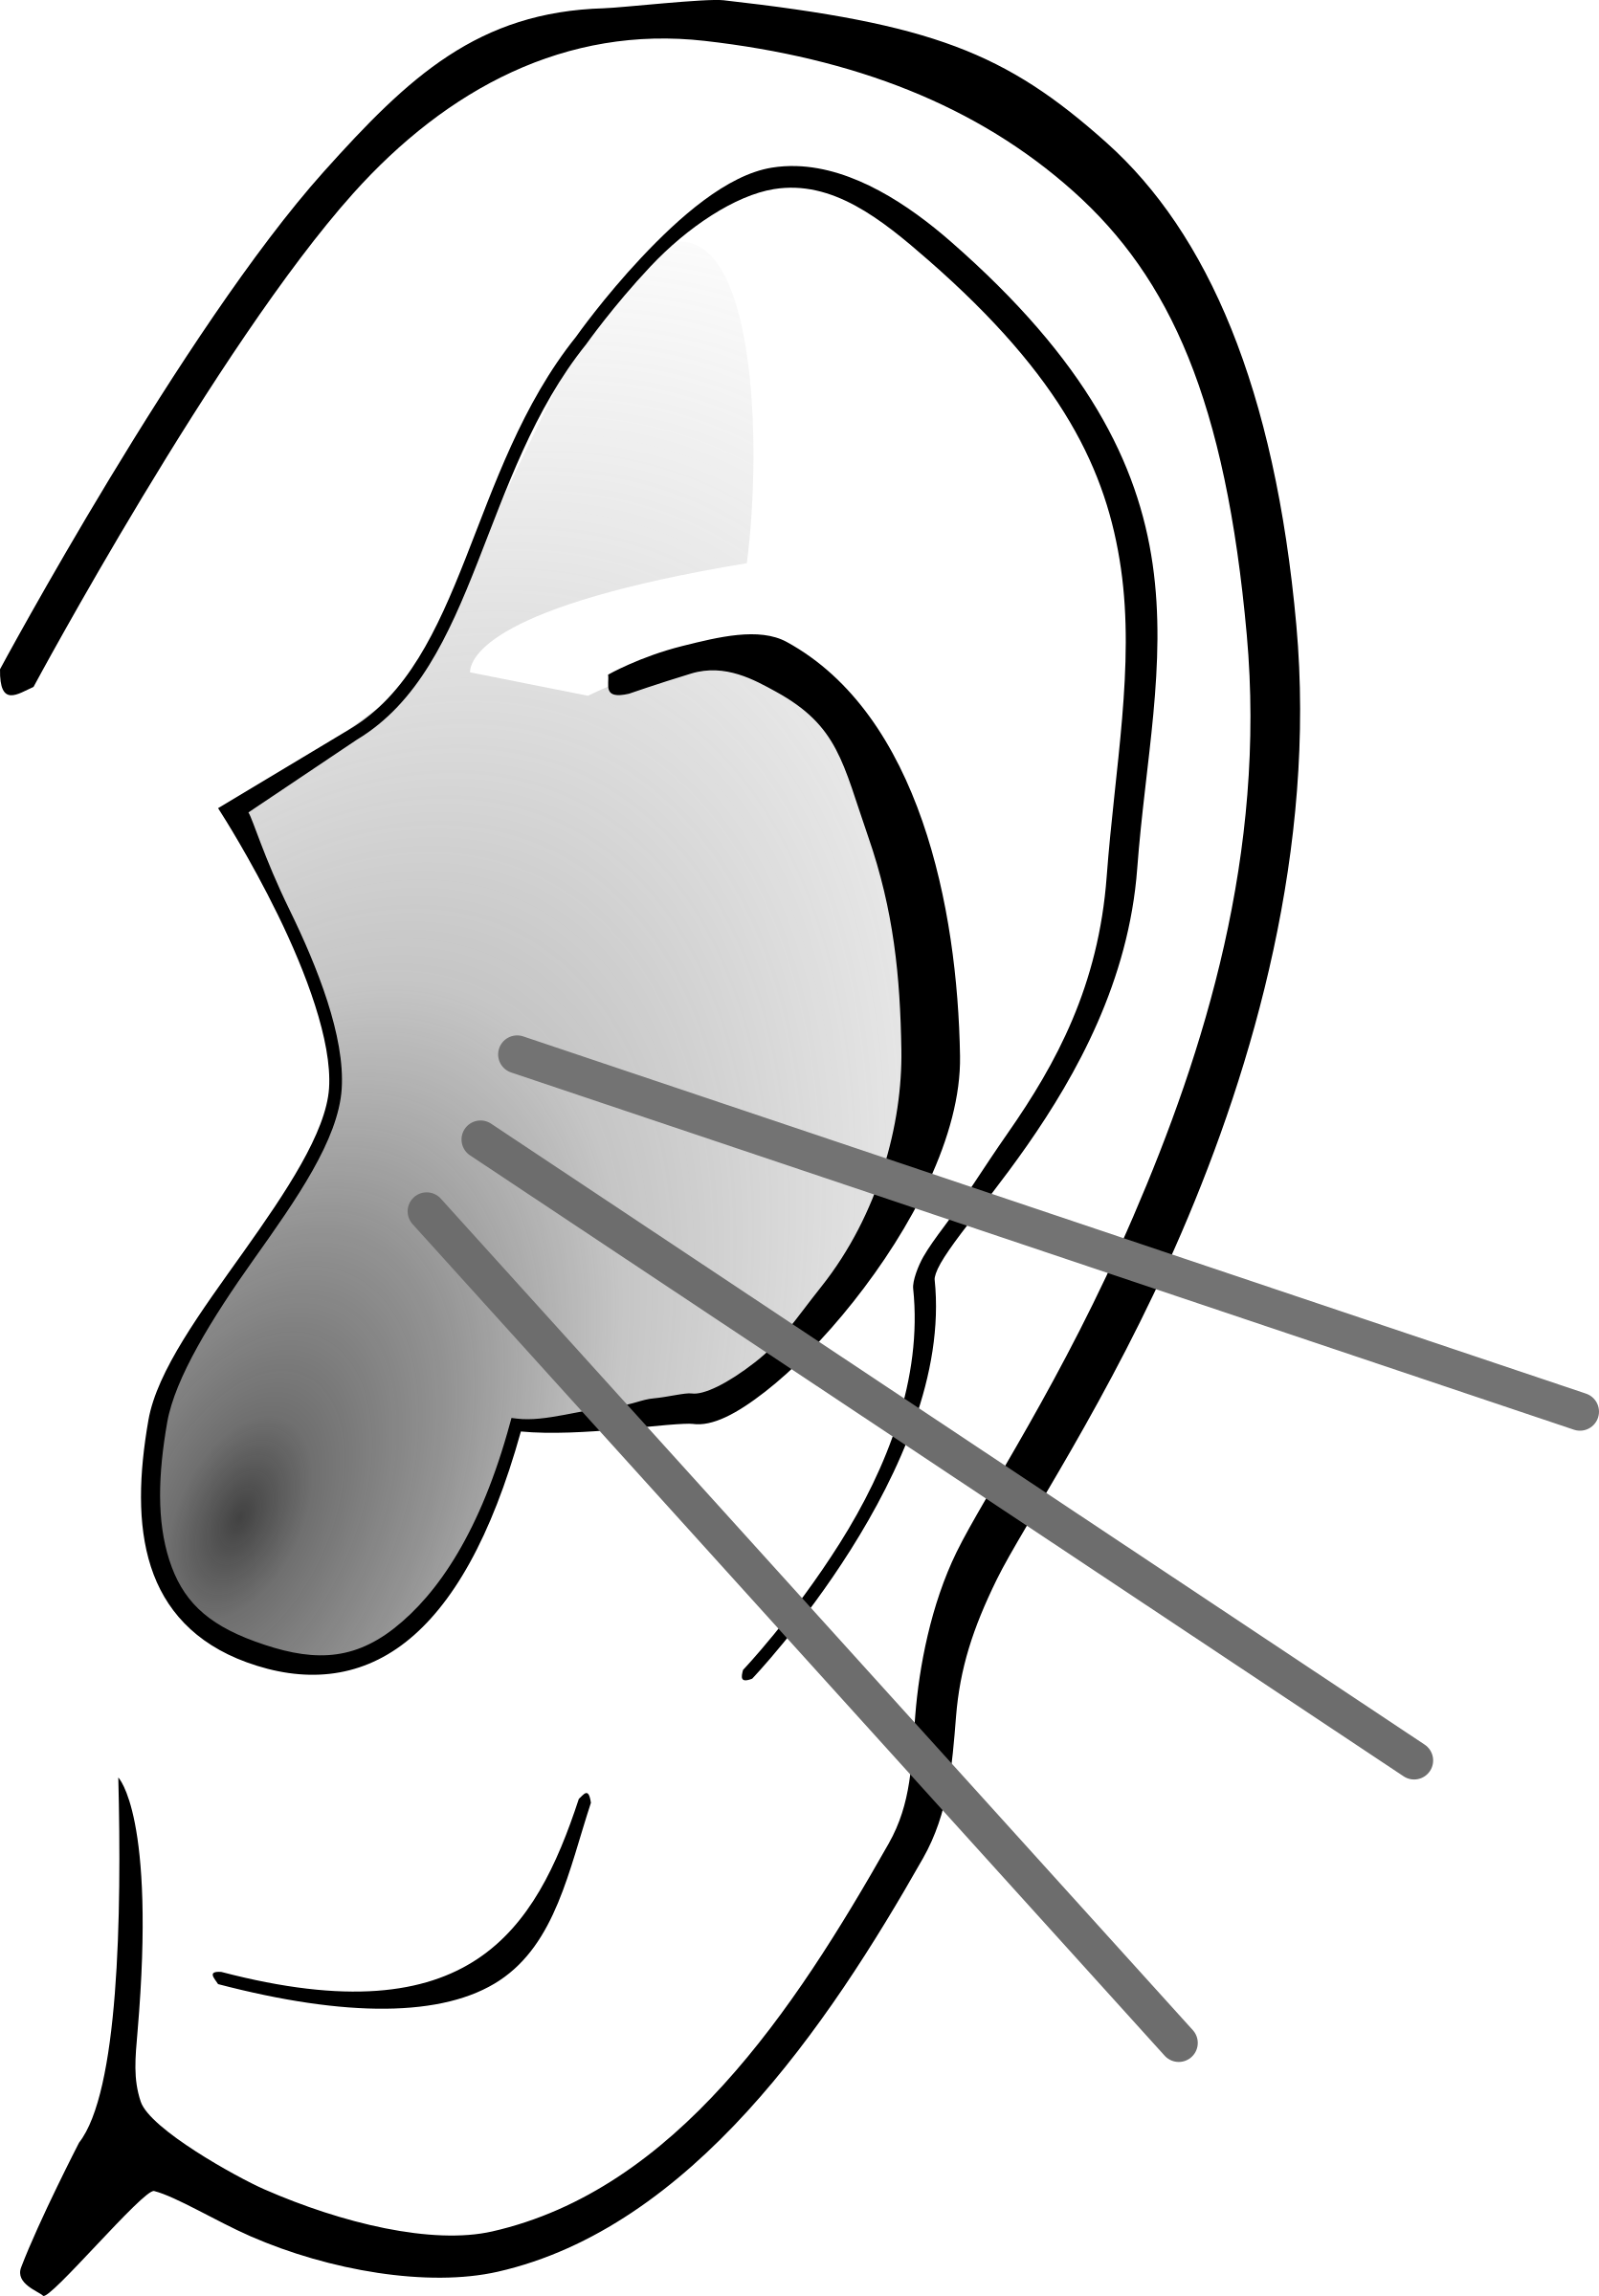 Listening Ear Image PNG Image